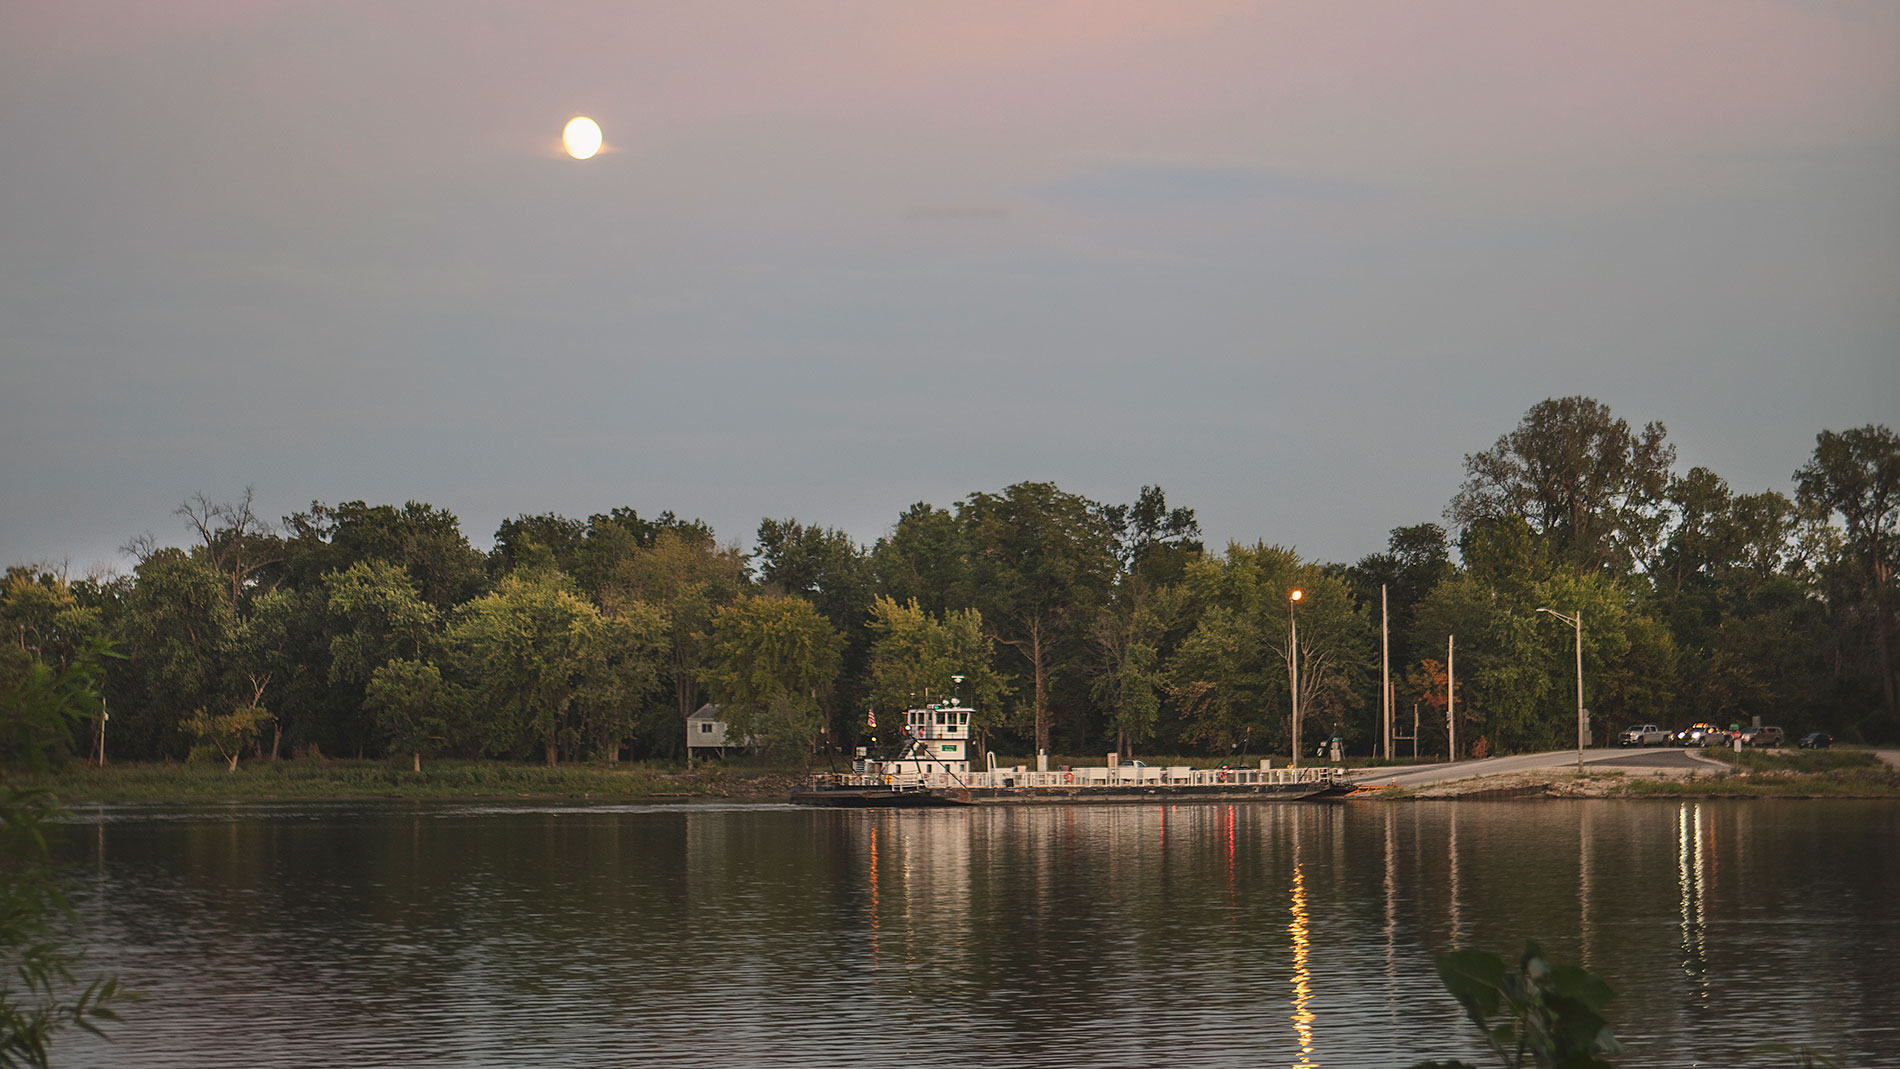 the brussels ferry makes its way across the illinois river between calhoun and jersey counties